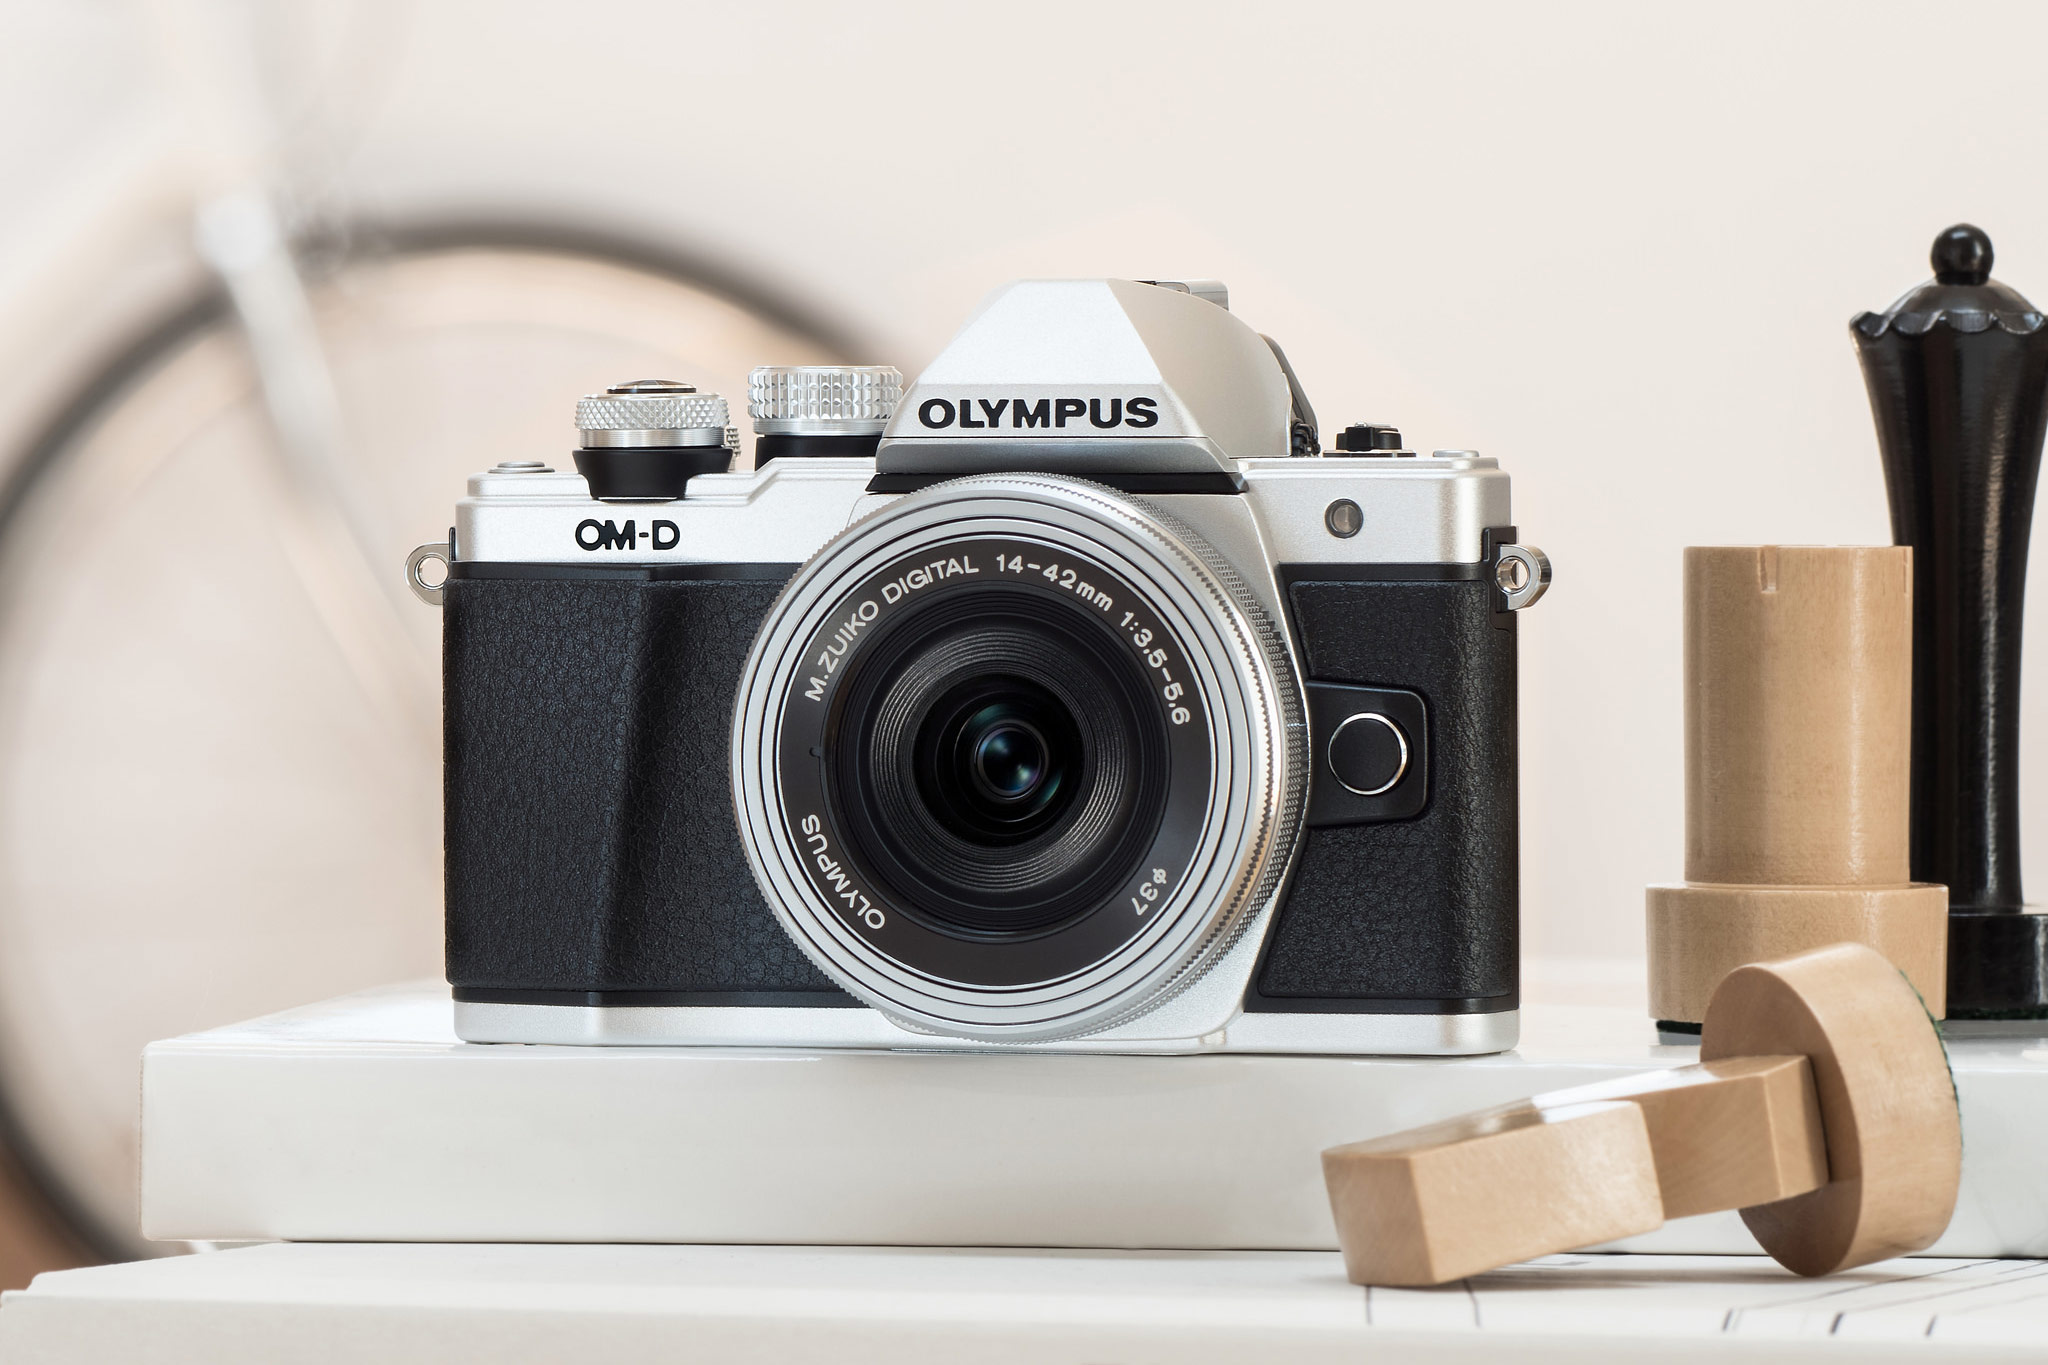 Olympus OM D E M10 Mark II vs Olympus OM D E M10 – The 9 Key Differences